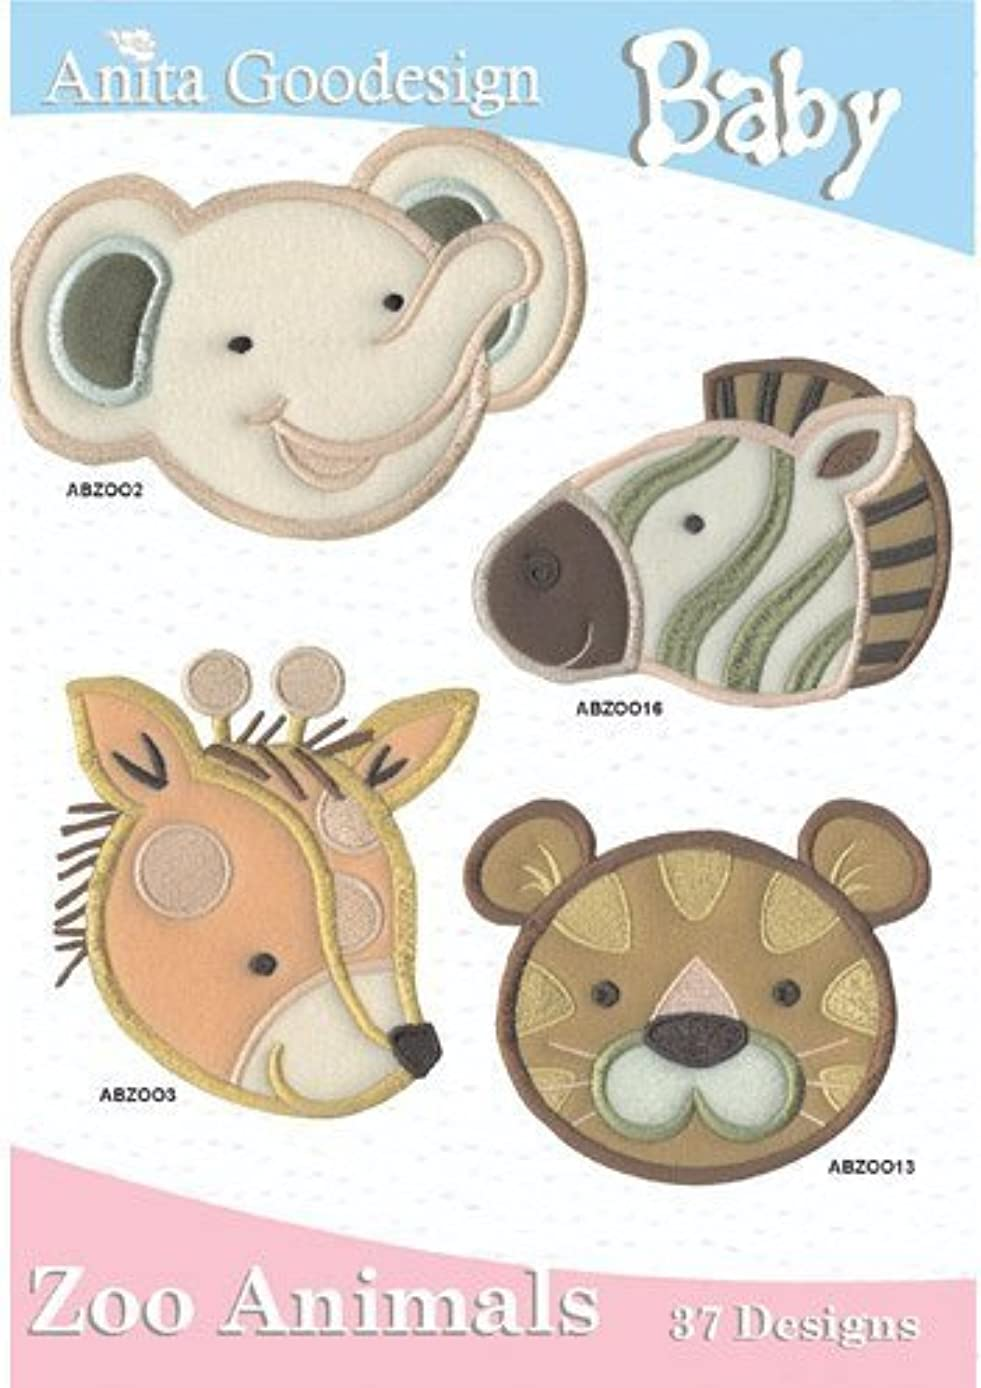 Anita Goodesign Embroidery Designs Cd Baby ZOO Animals